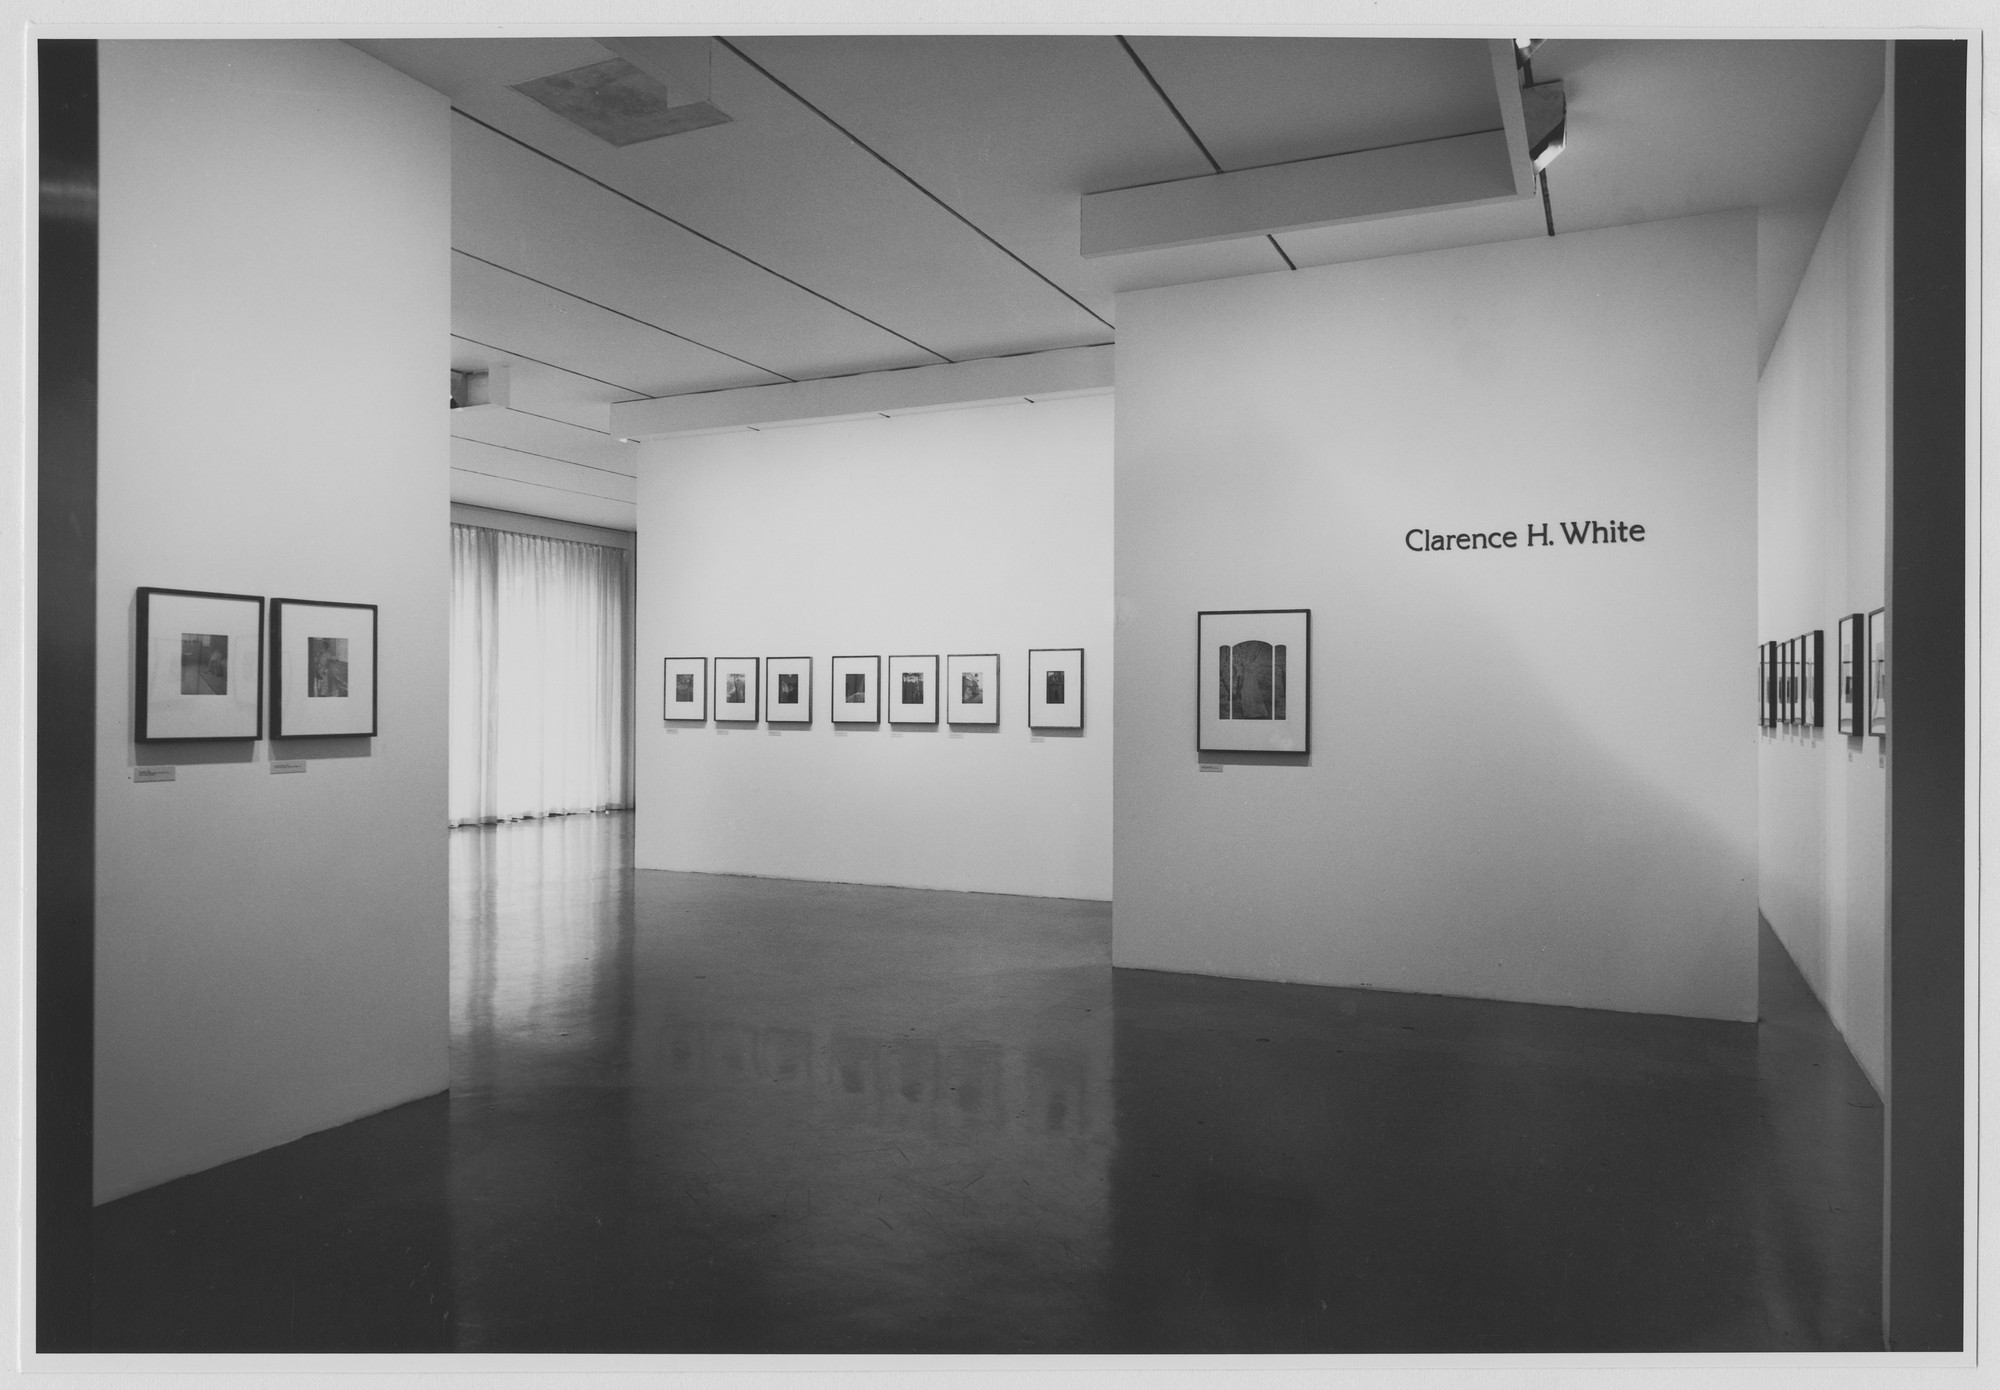 "Installation view of the exhibition, ""Clarence H. White."" July 21, 1971–September 27, 1971. Photographic Archive. The Museum of Modern Art Archives, New York. IN971.1. Photograph by James Mathews."